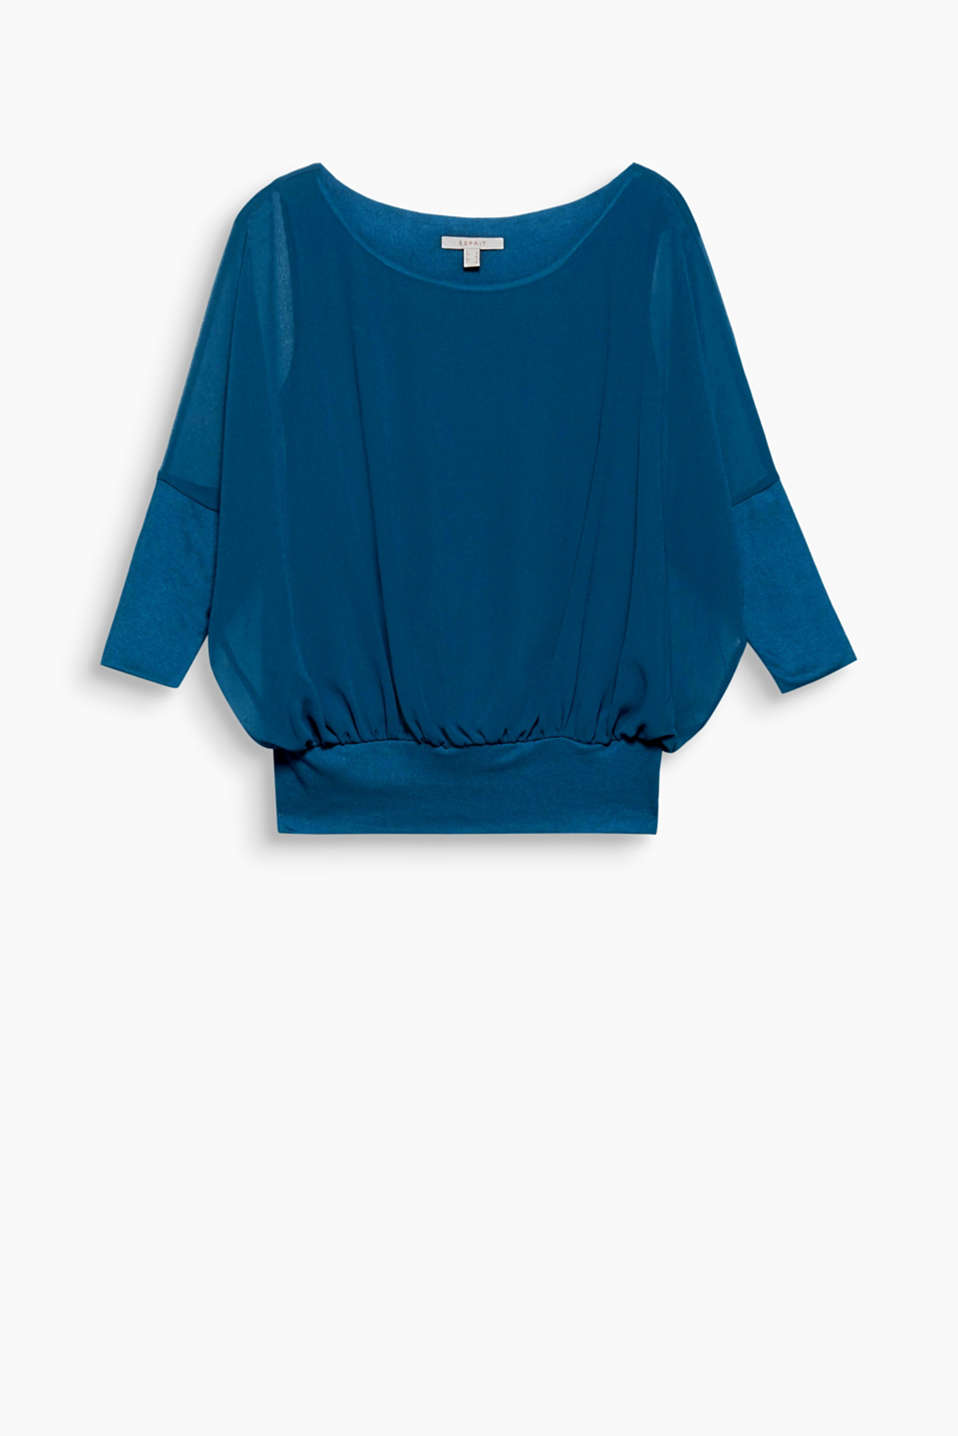 -Flowing, delicate and sheer, this lightweight chiffon blouse comes in a relaxed fit with batwing sleeves.